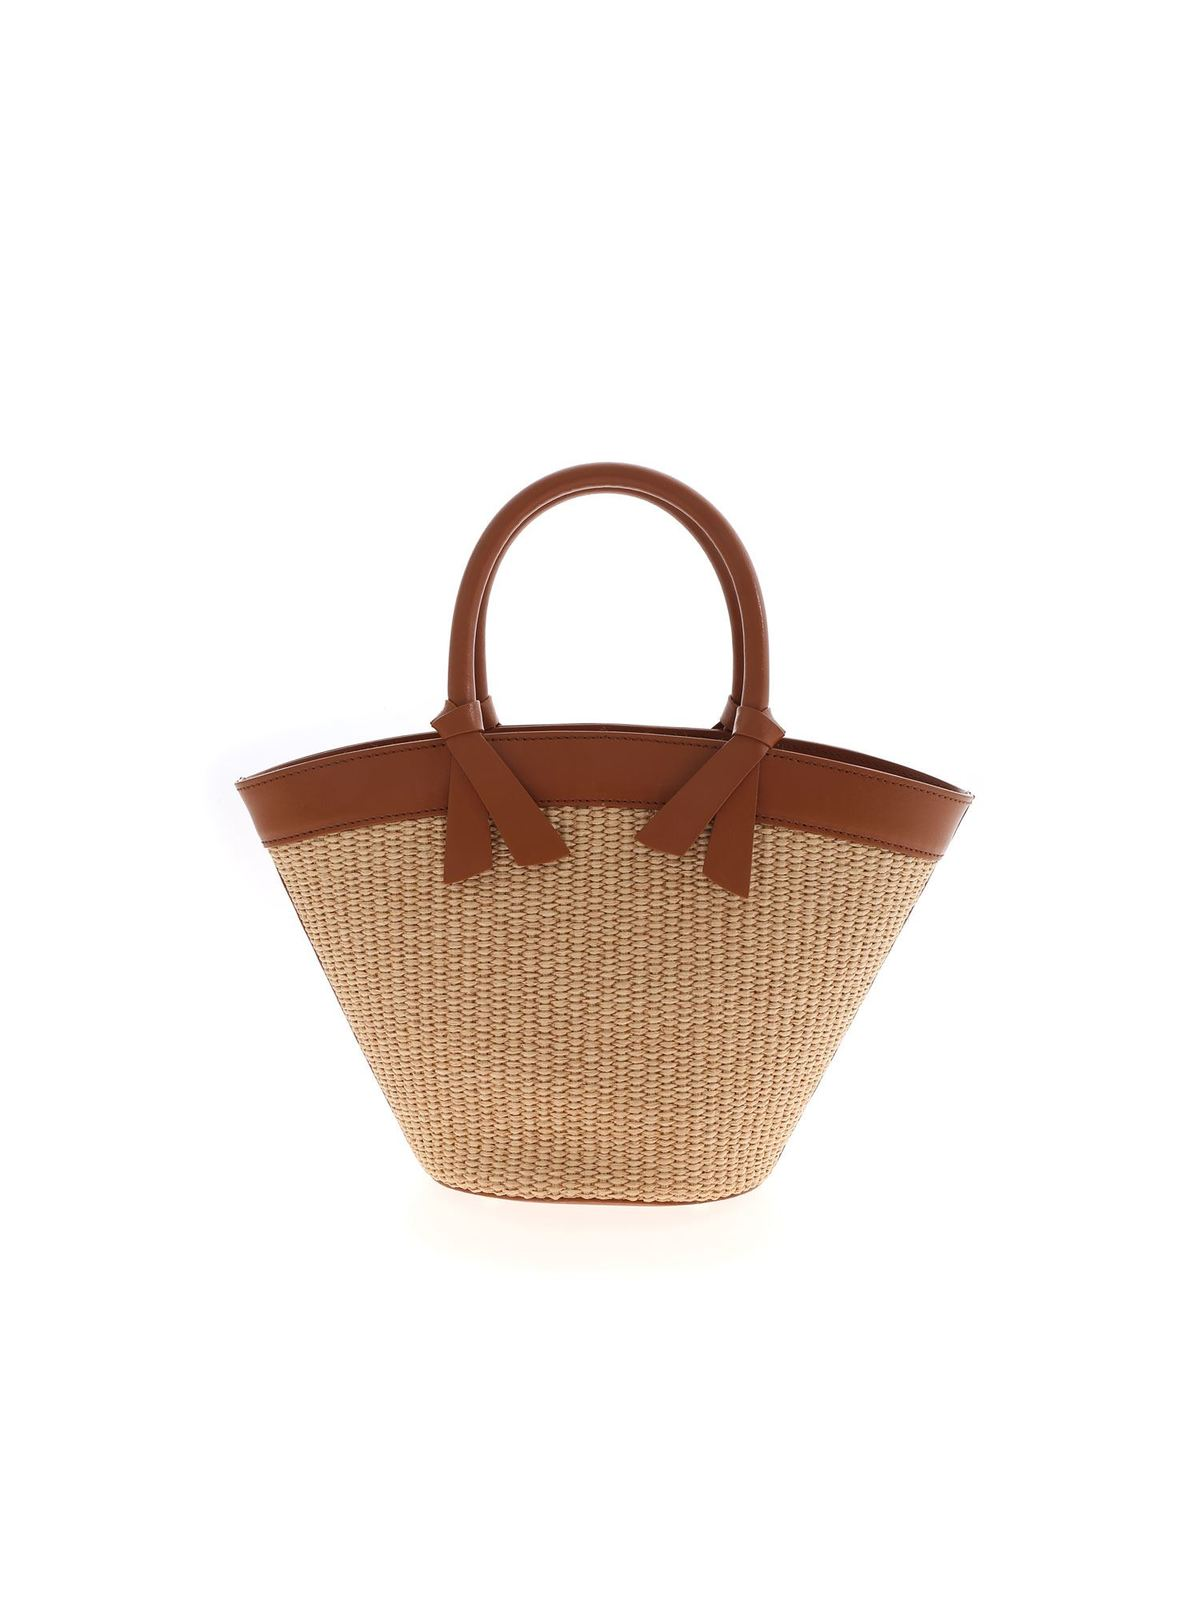 Ermanno Scervino JOLIE SMALL BAG IN BEIGE AND BROWN